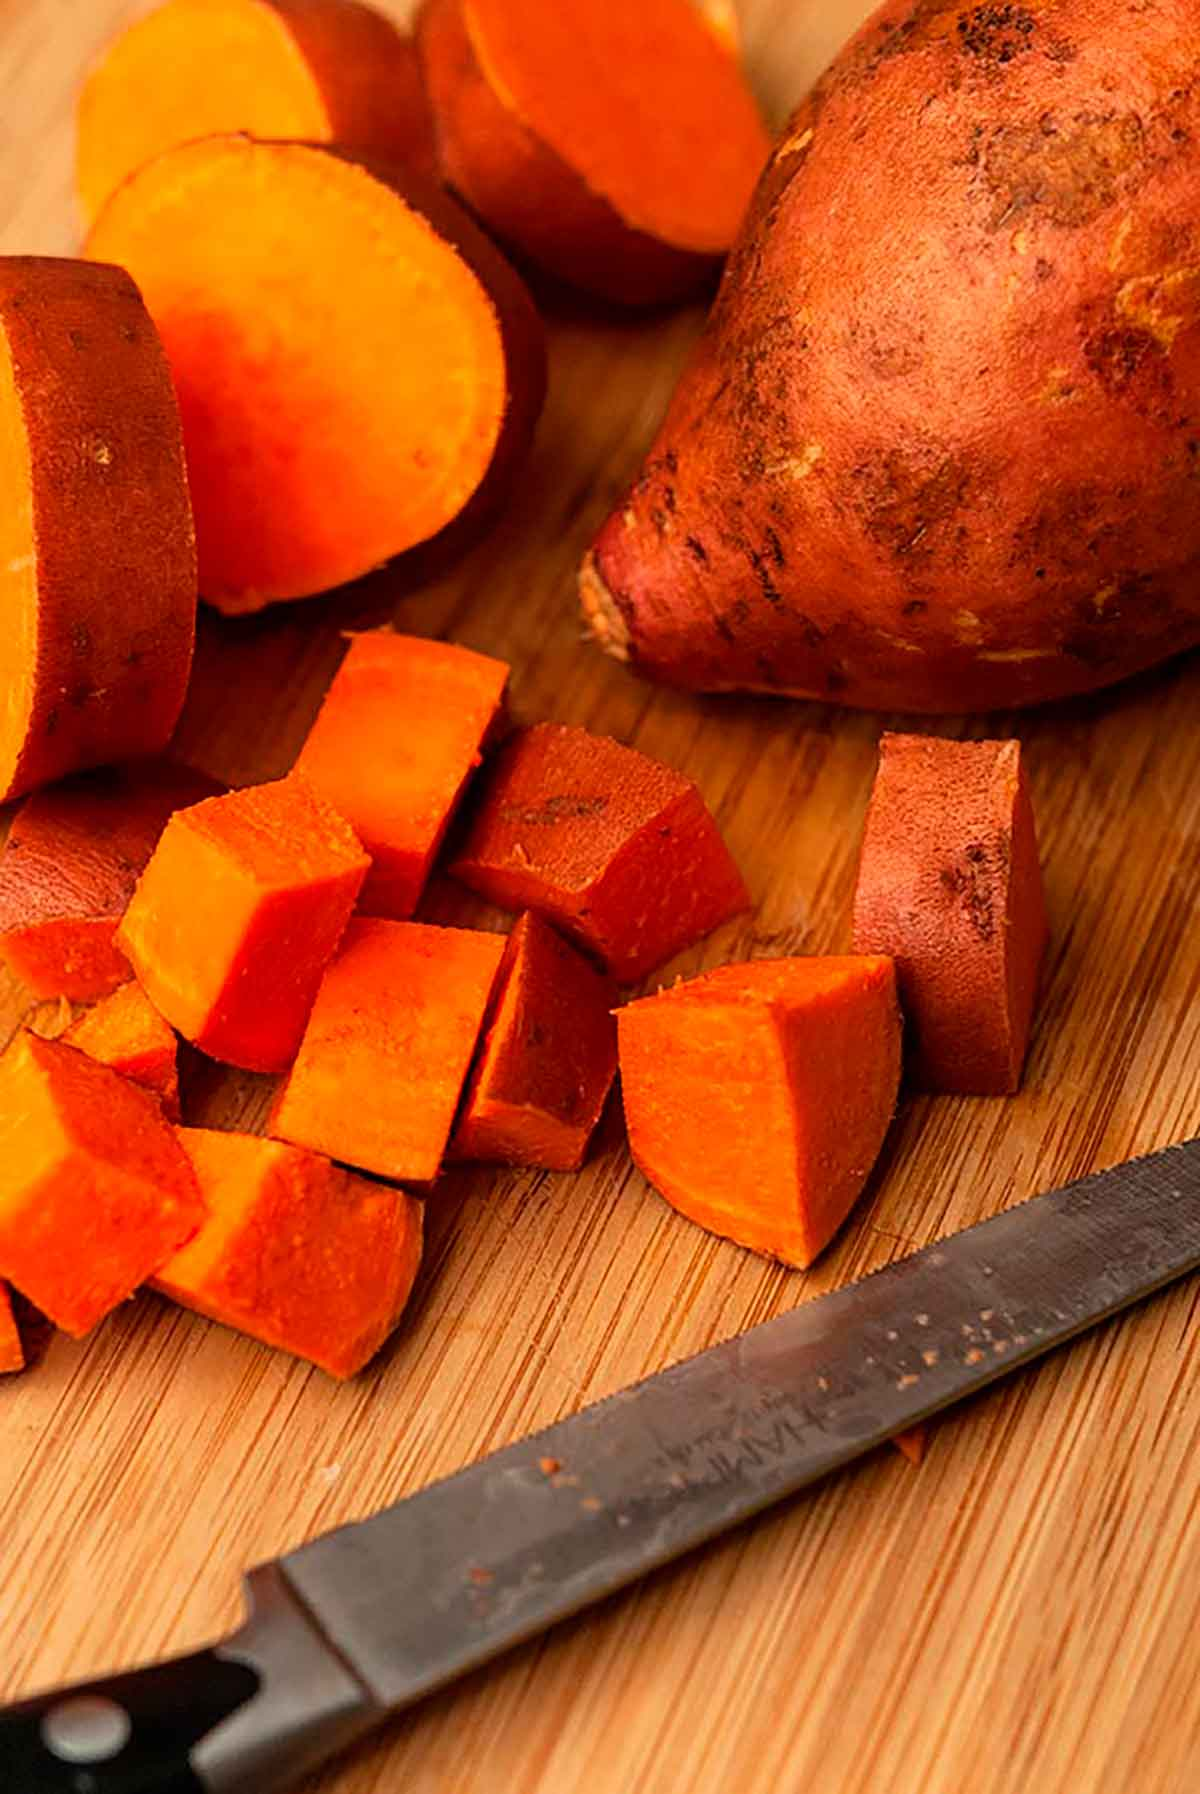 A diced sweet potato on a cutting board with a knife.